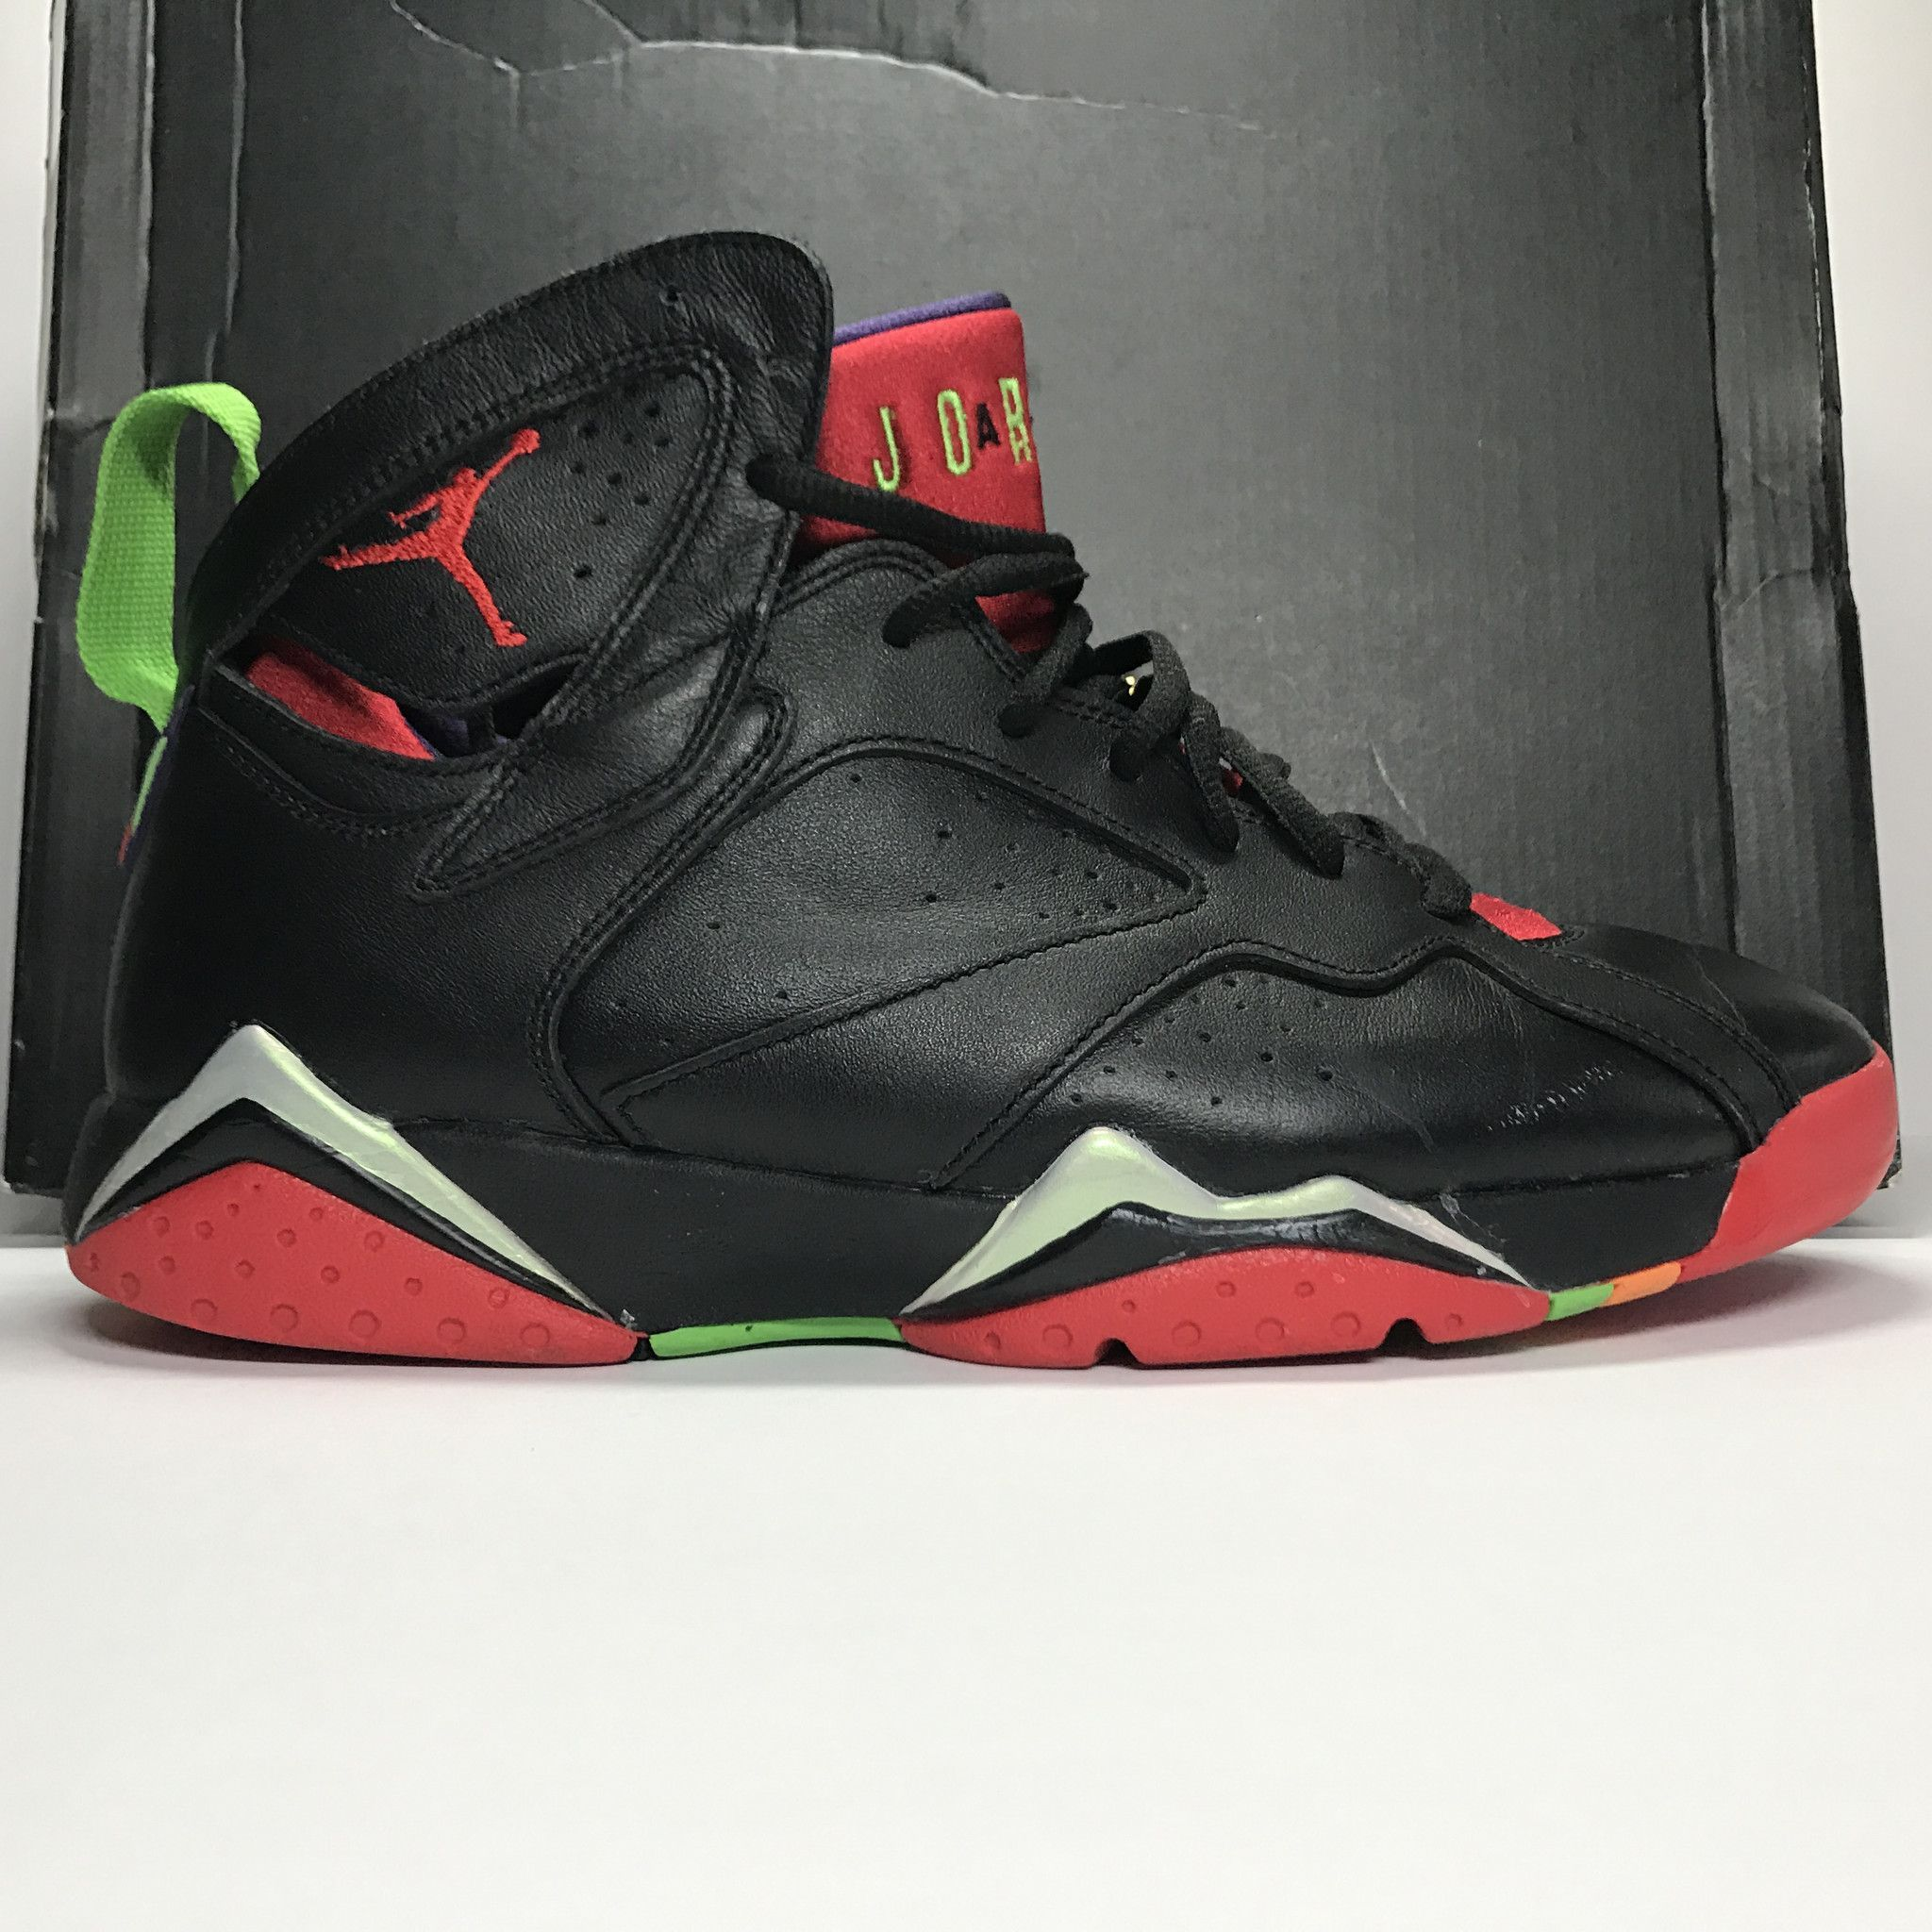 nike air jordan retro vii 7 marvin the martian tattoos